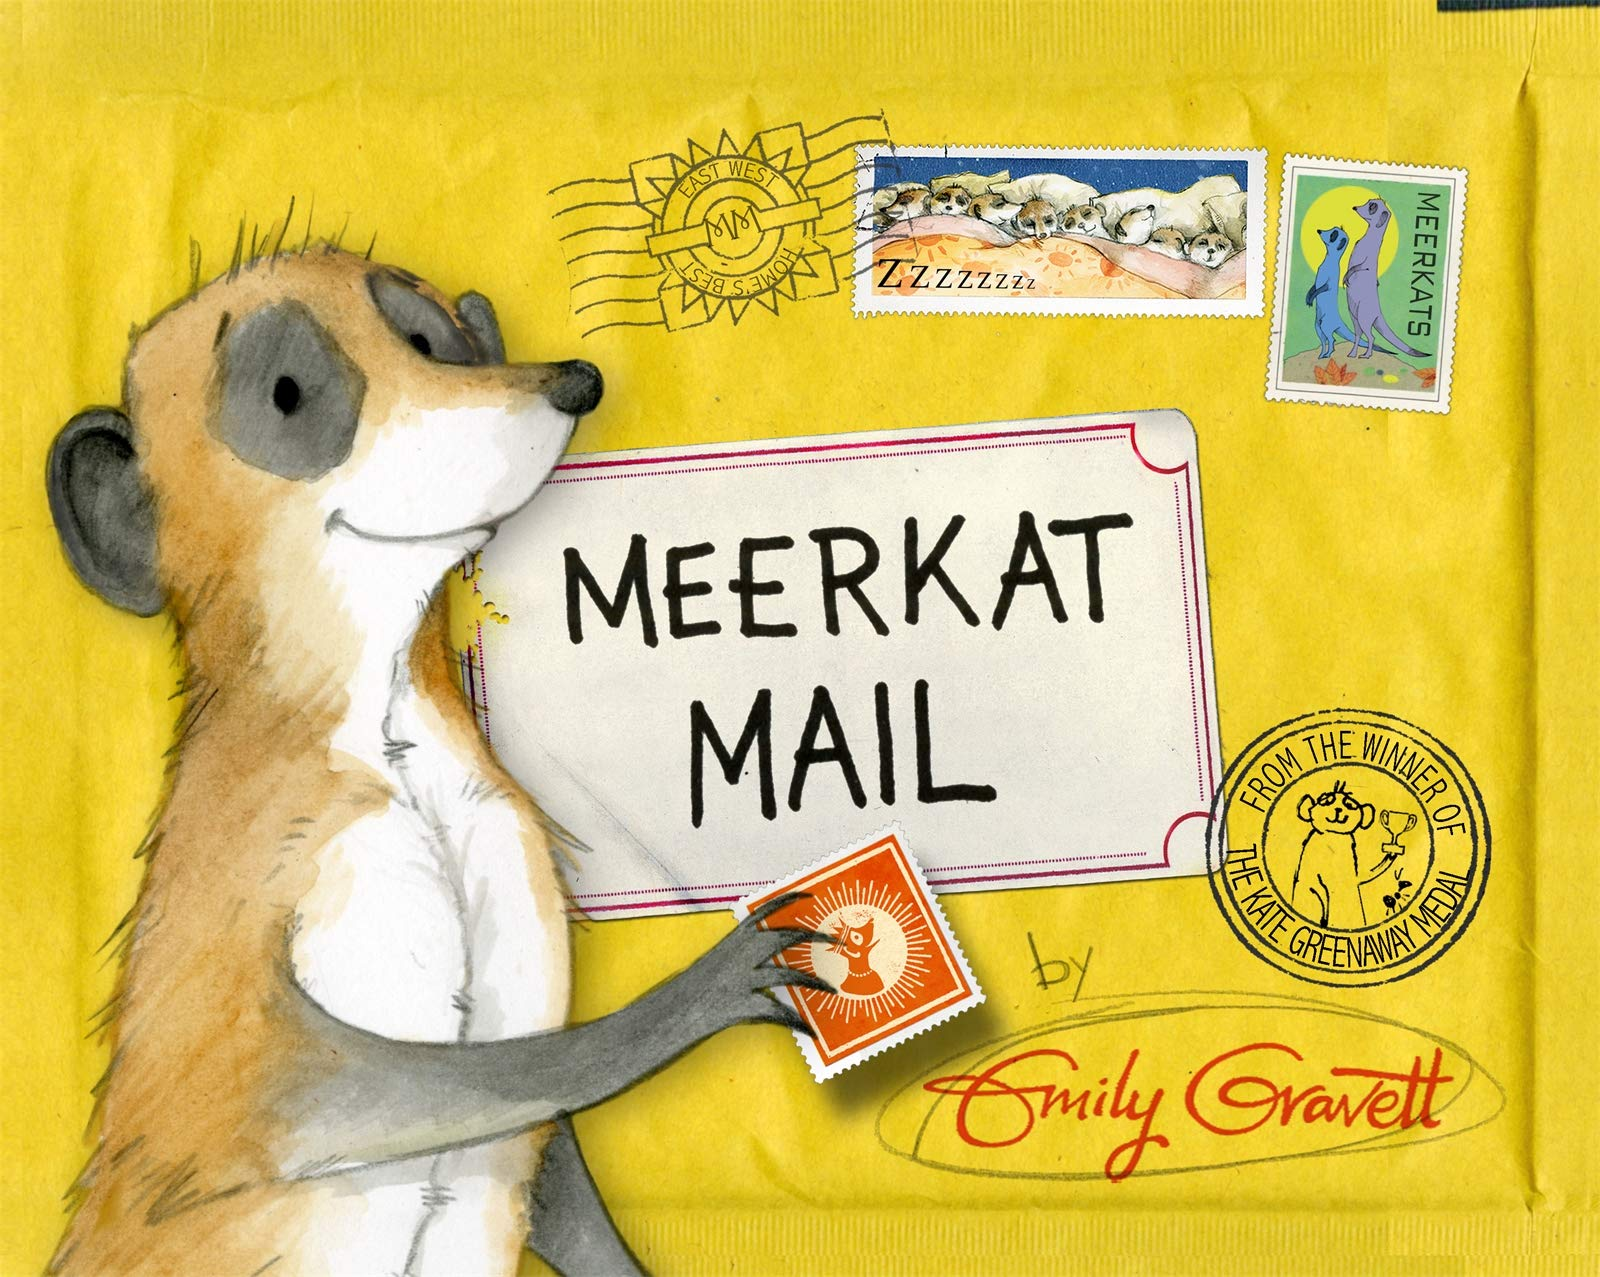 Meerkat Mail: Amazon.co.uk: Gravett, Emily: Books